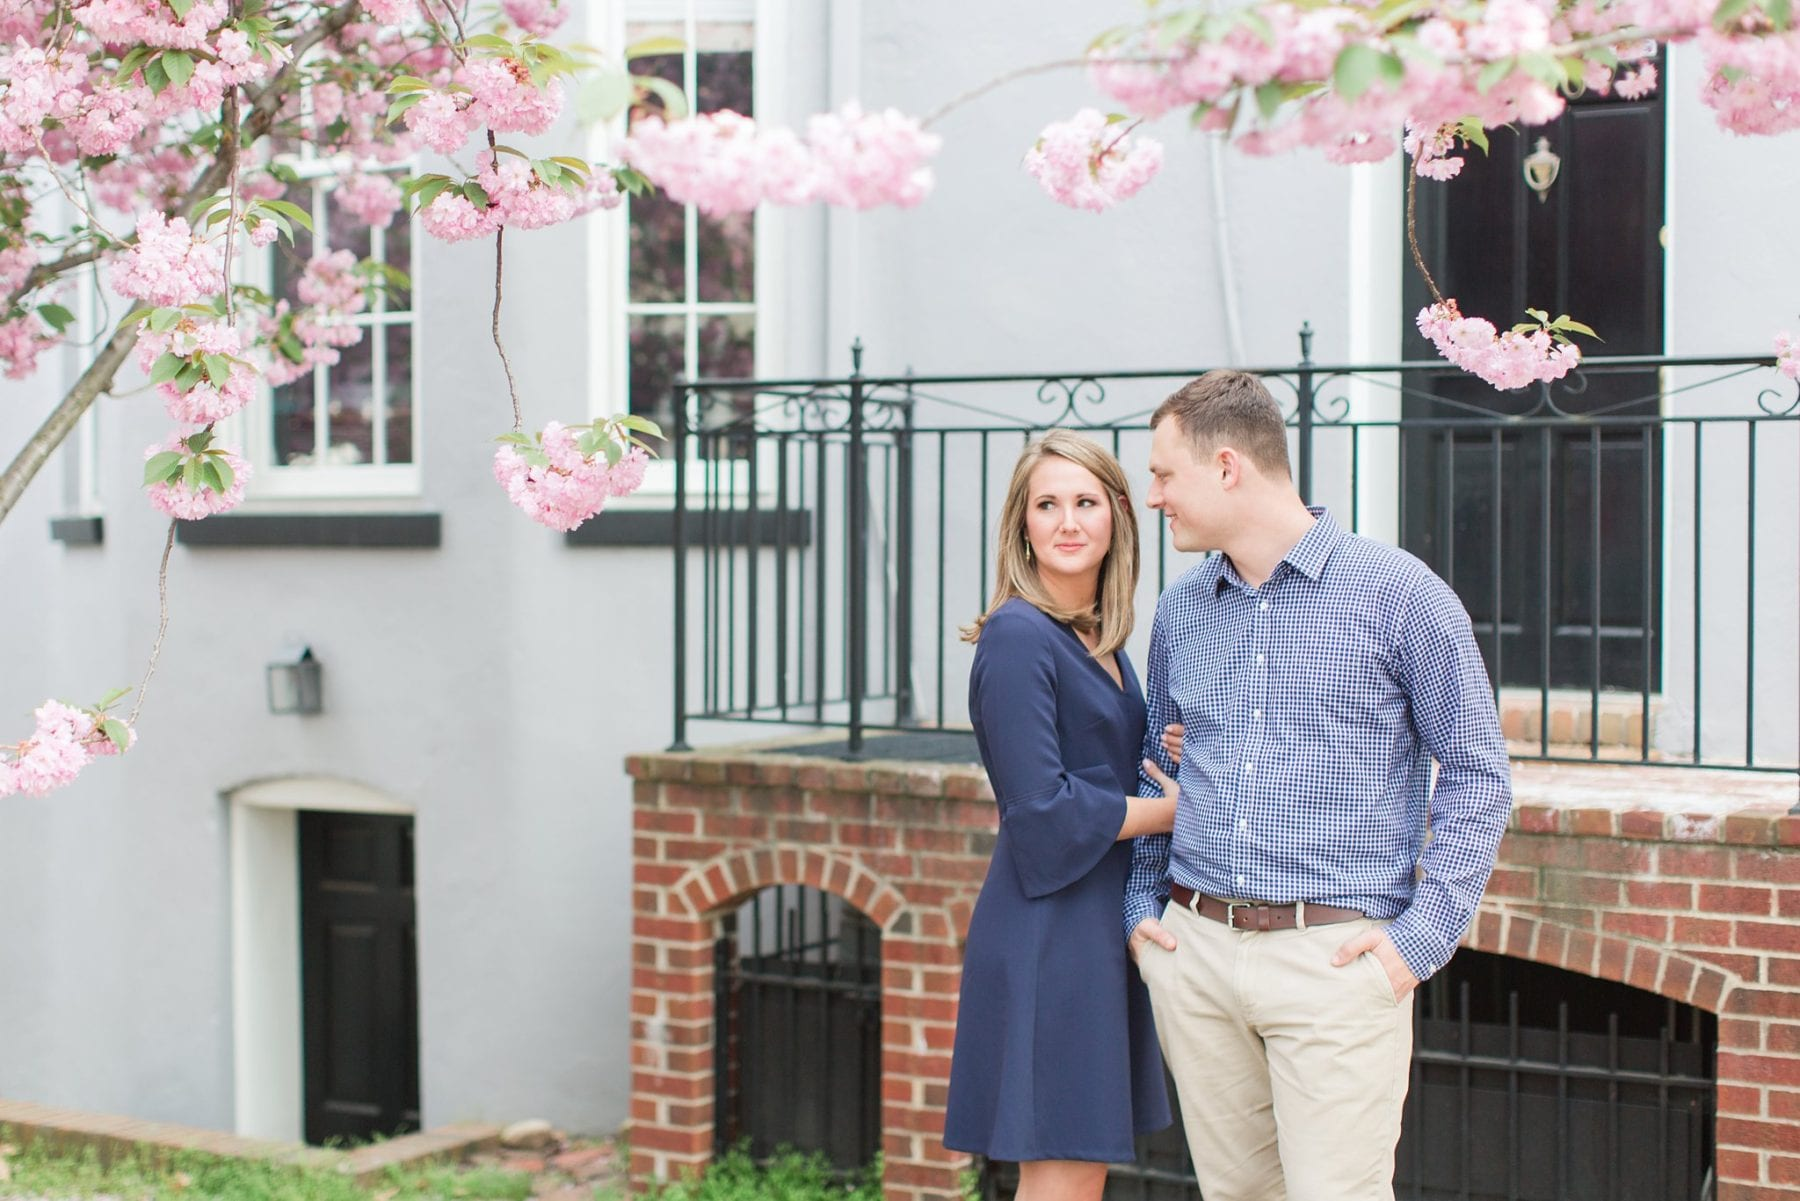 Springtime Old Town Alexandria Engagement Session Matt & Maxie Megan Kelsey Photography-83.jpg